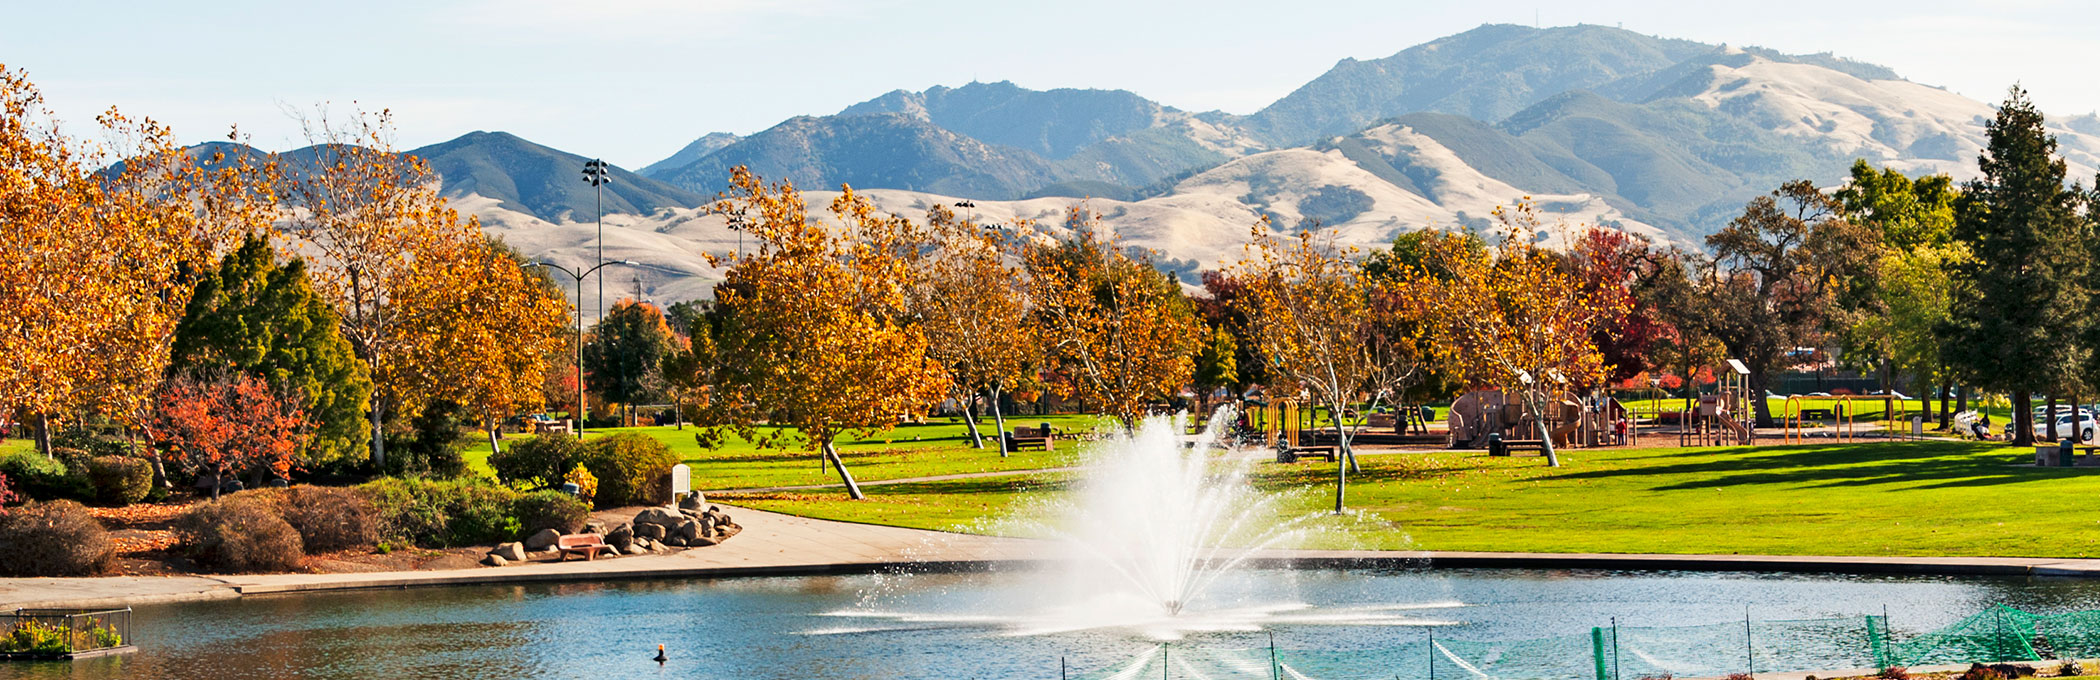 Lake with water fountains & autumn trees in the back